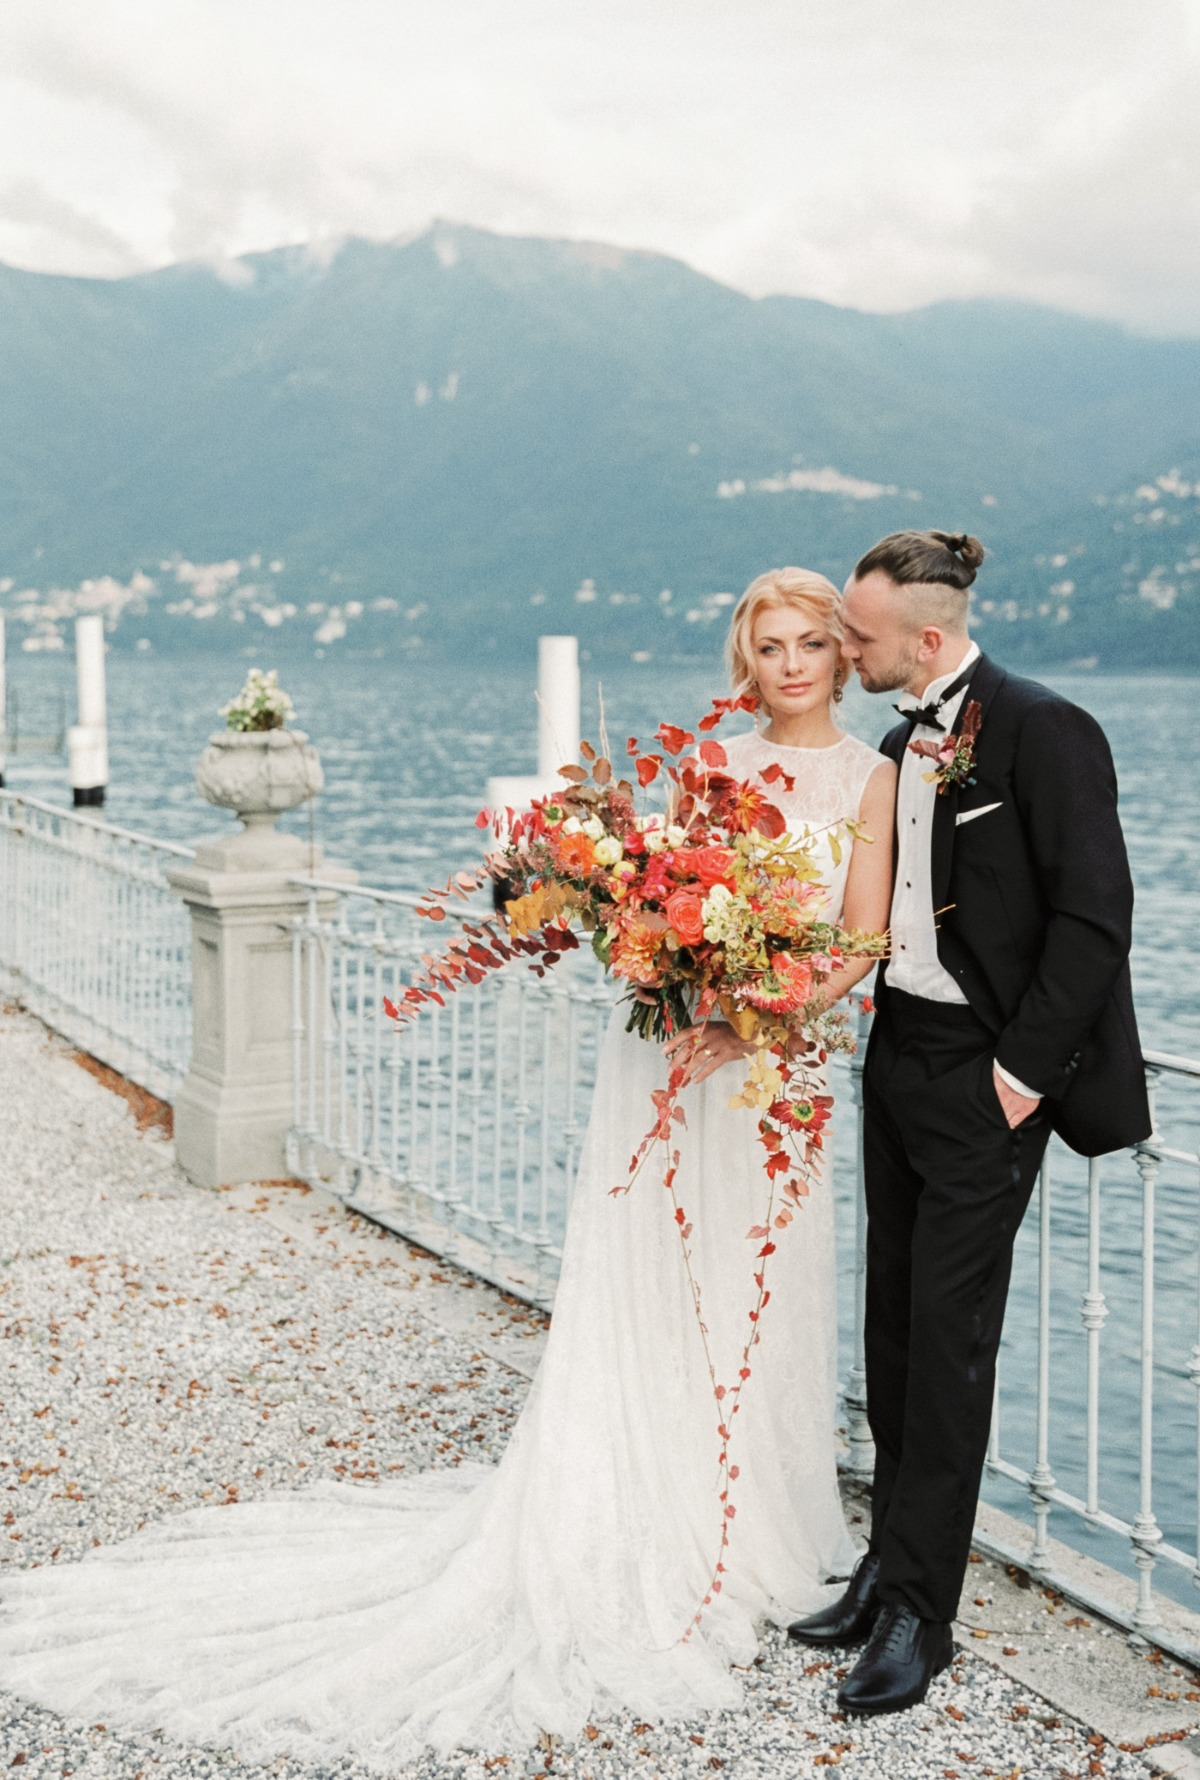 The Bride Wore Red Velvet Shoes for Her Fall Wedding Day on Lake Como